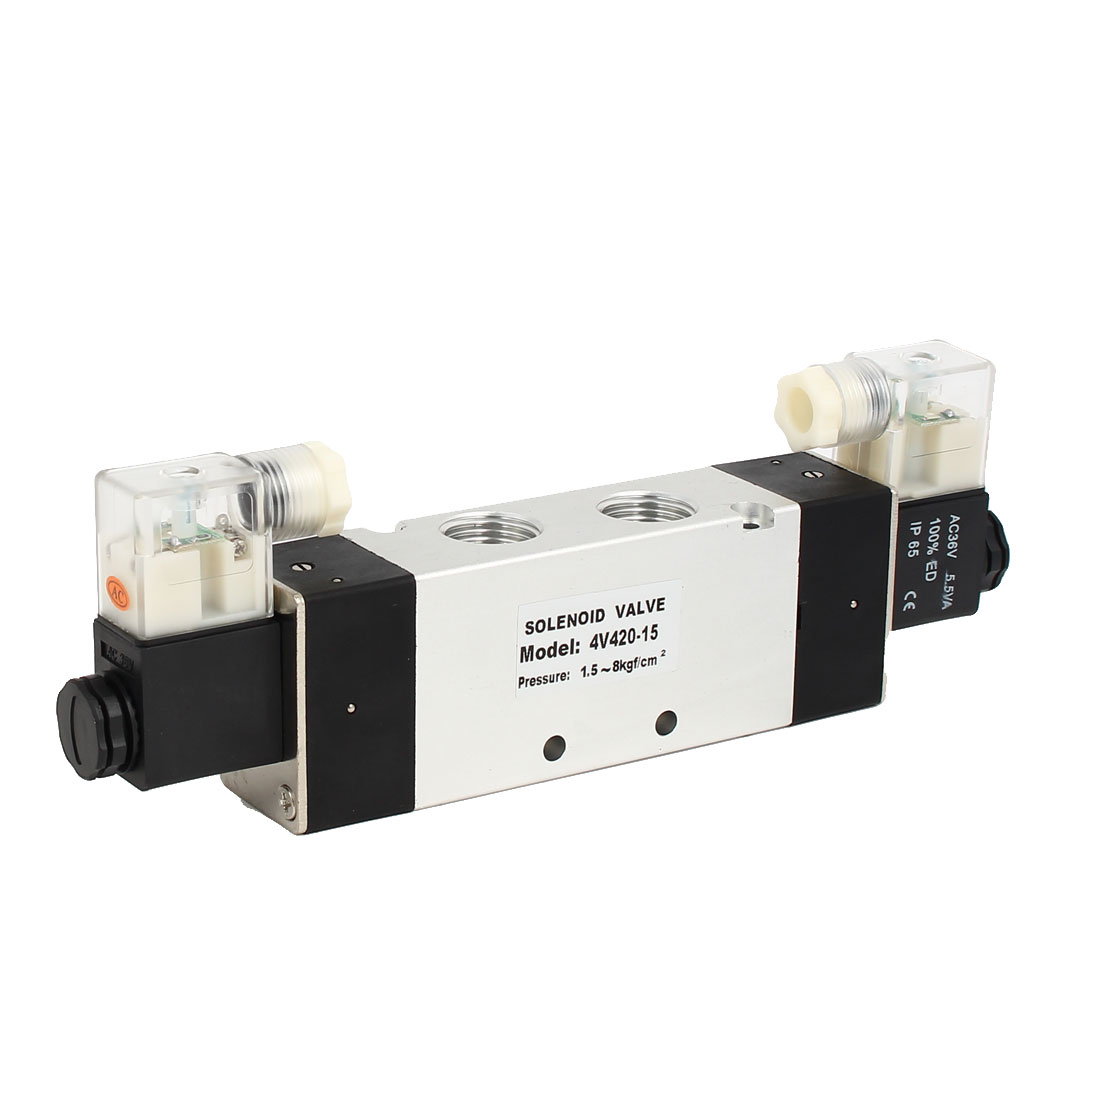 AC 36V 2 Position 5 Way Neutral Pneumatic Air Control Solenoid Valve 4V420-15